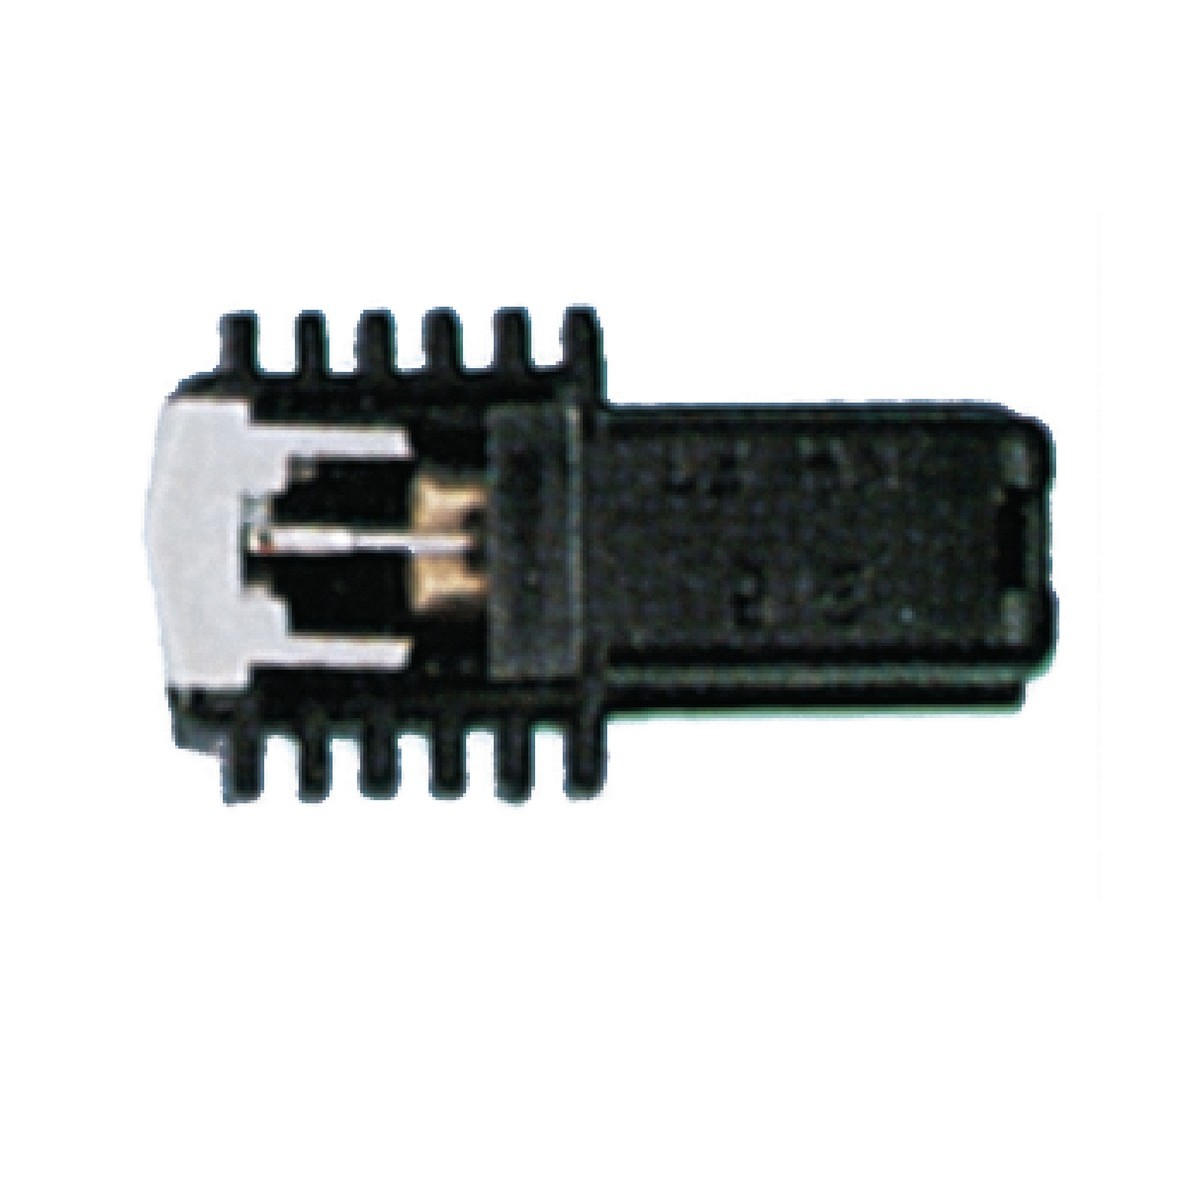 Pickupnaald Philips GP215